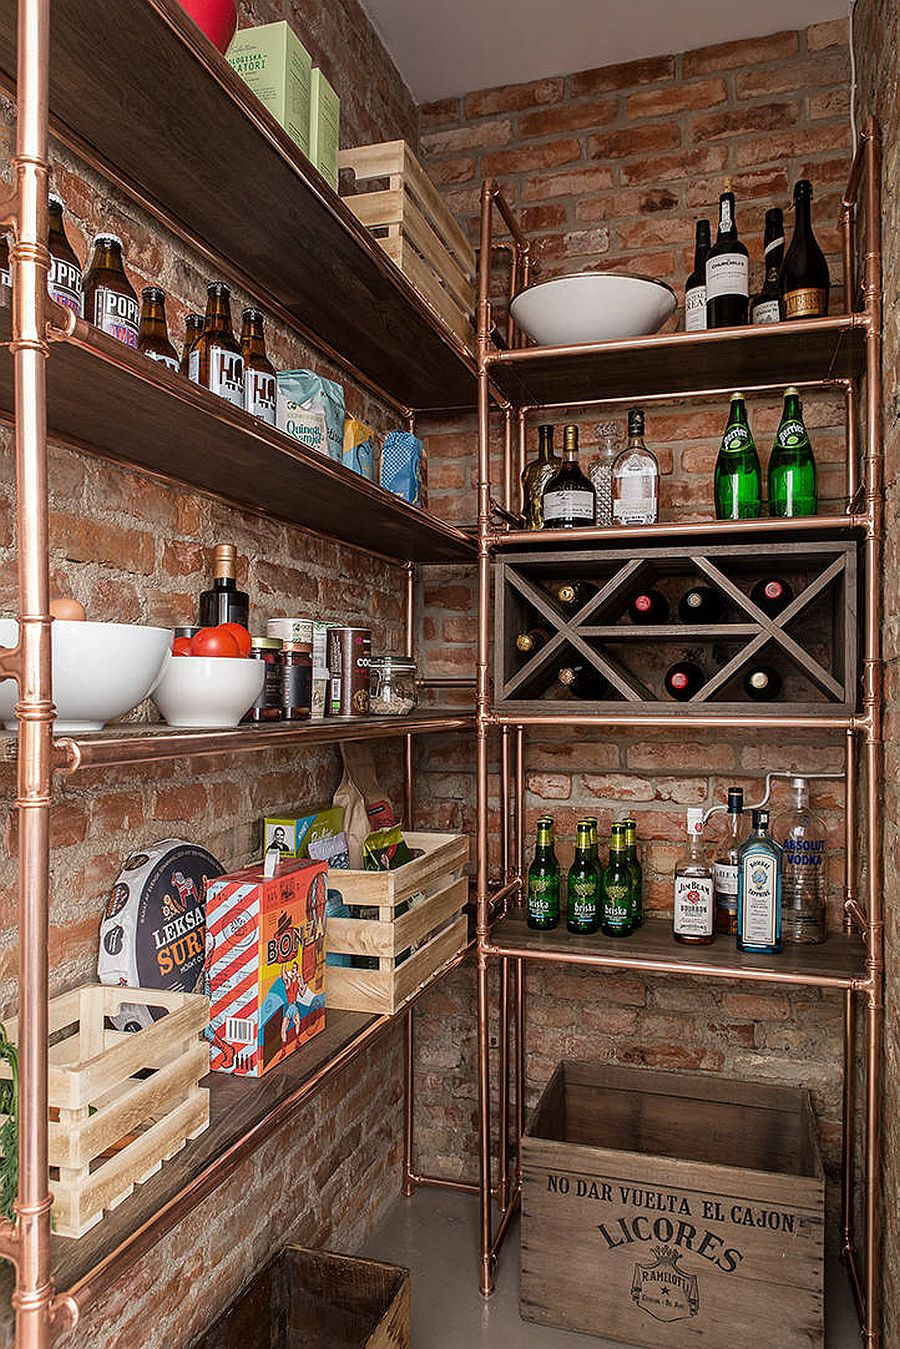 Small industrial style pantry with brick walls and simple metallic shelves